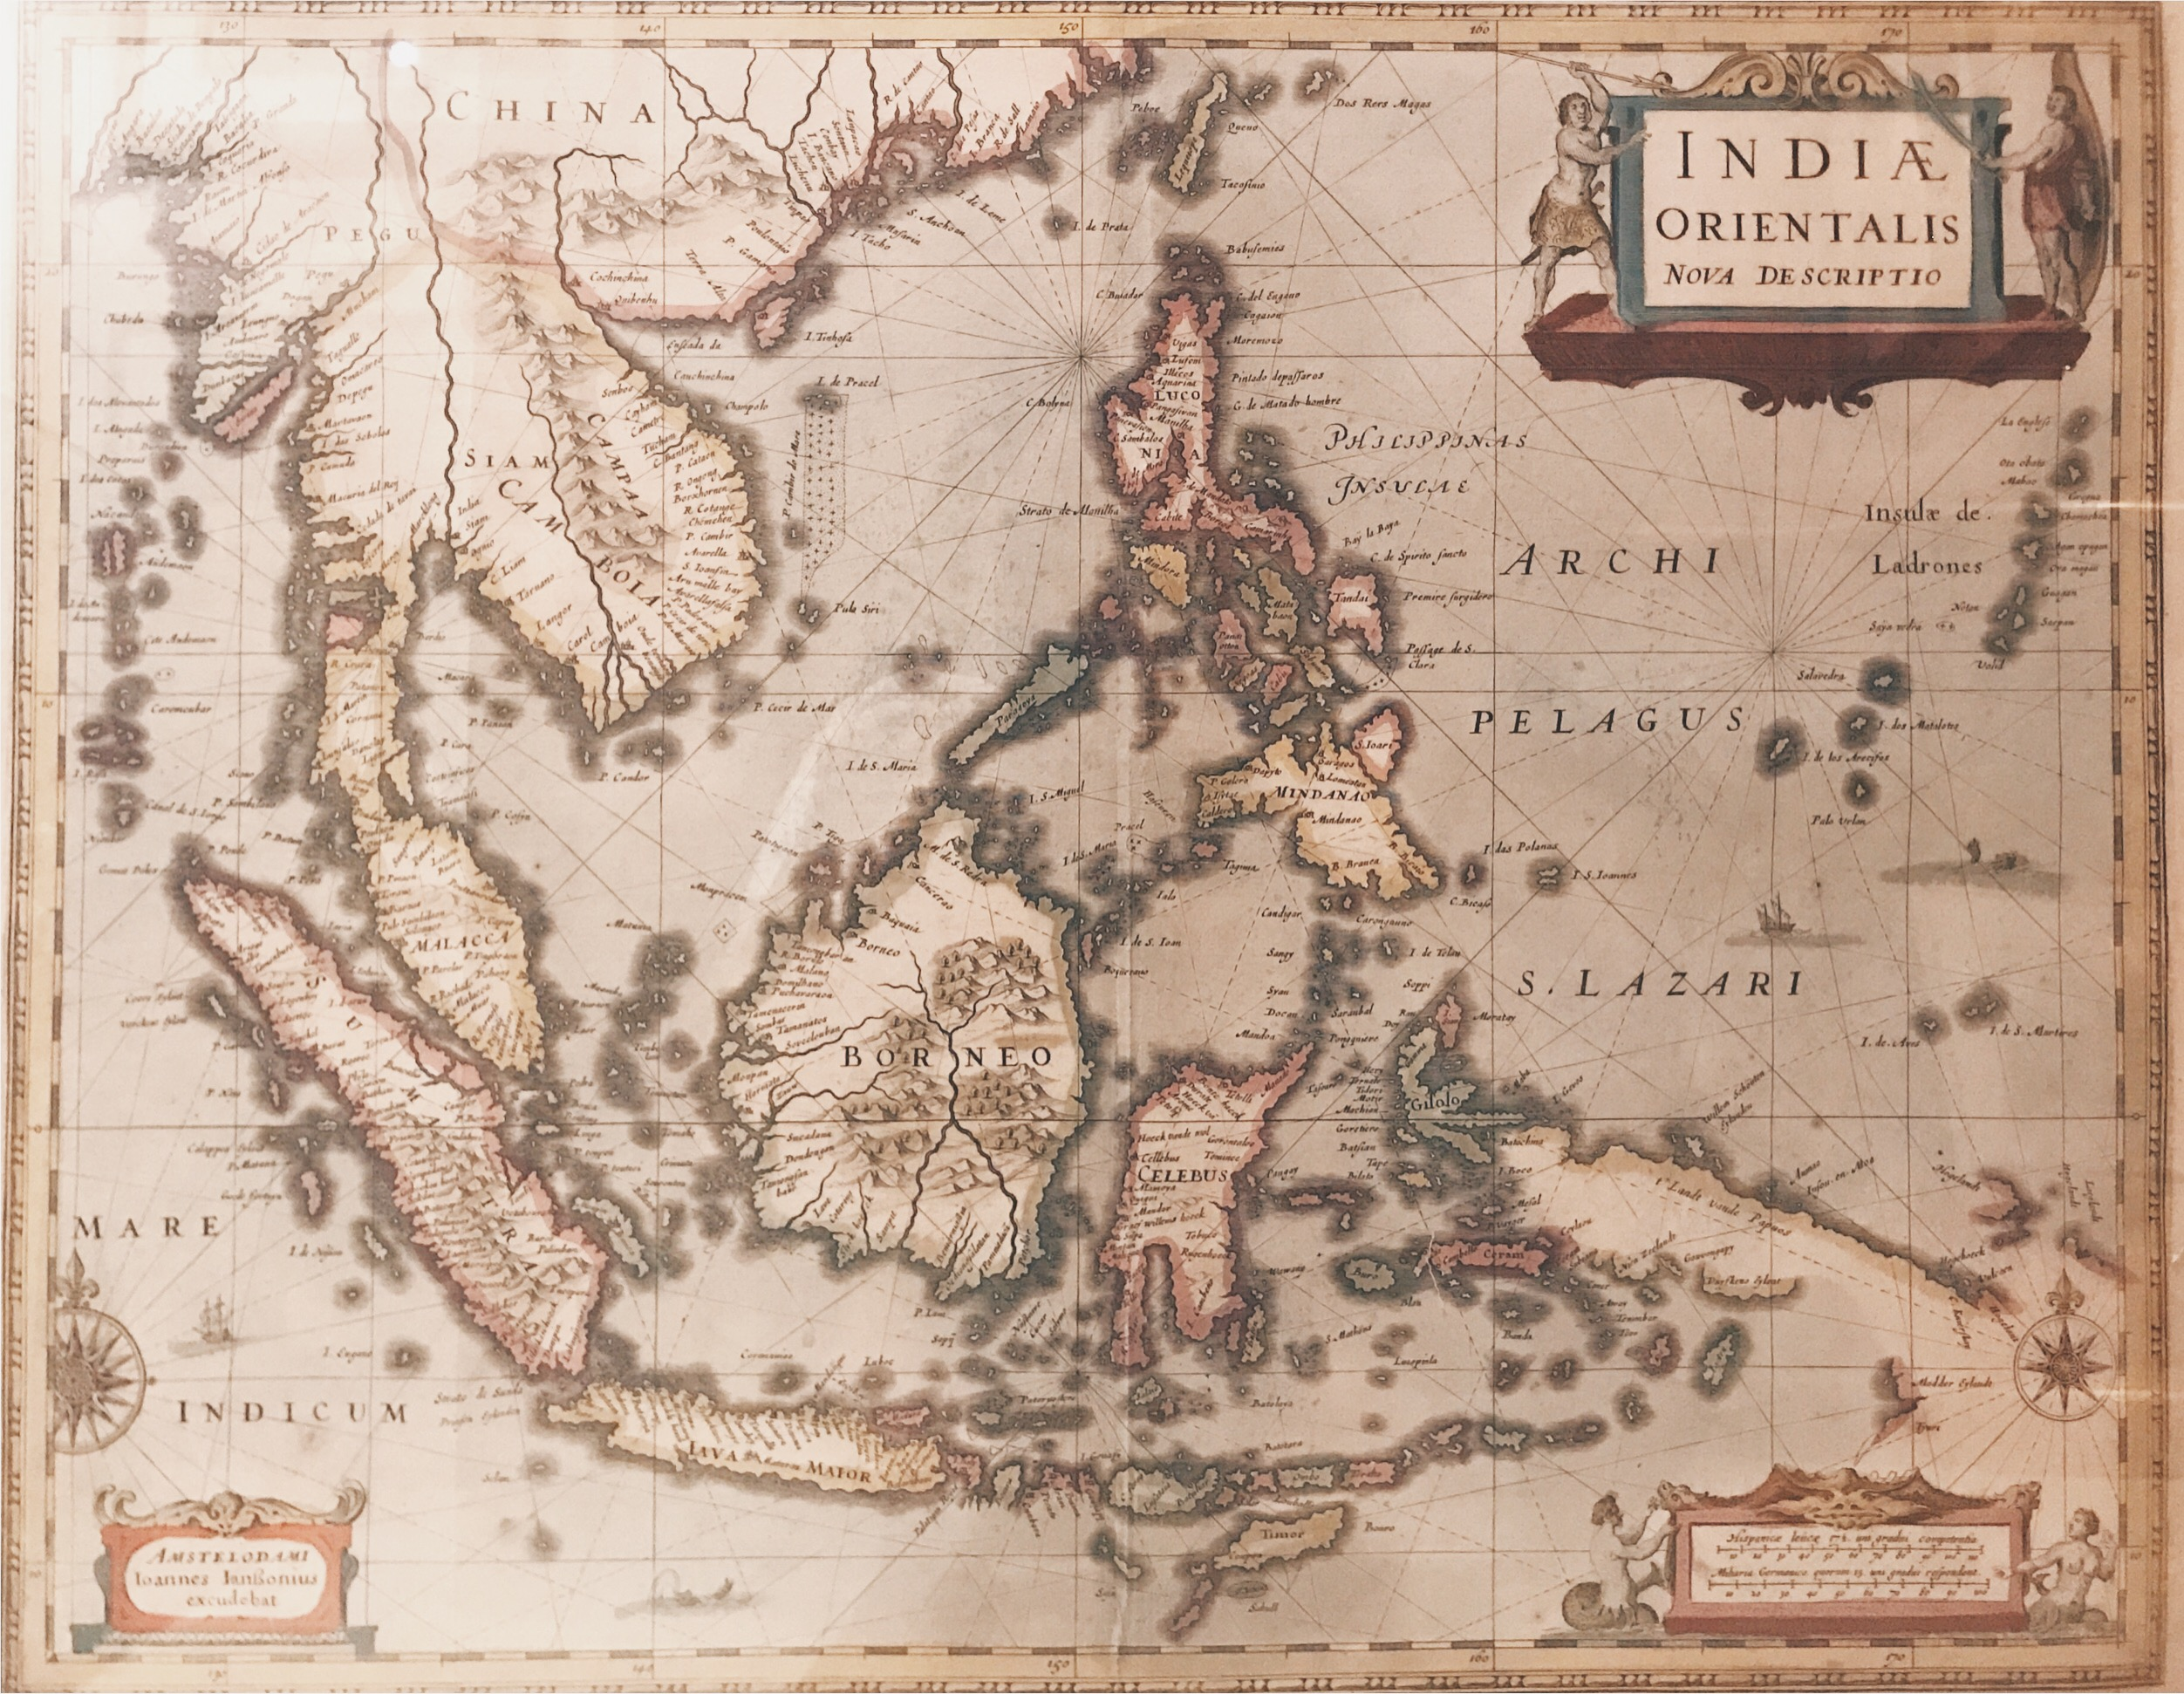 Map of Southeast Asia and the Philippines - Jansson (1630)